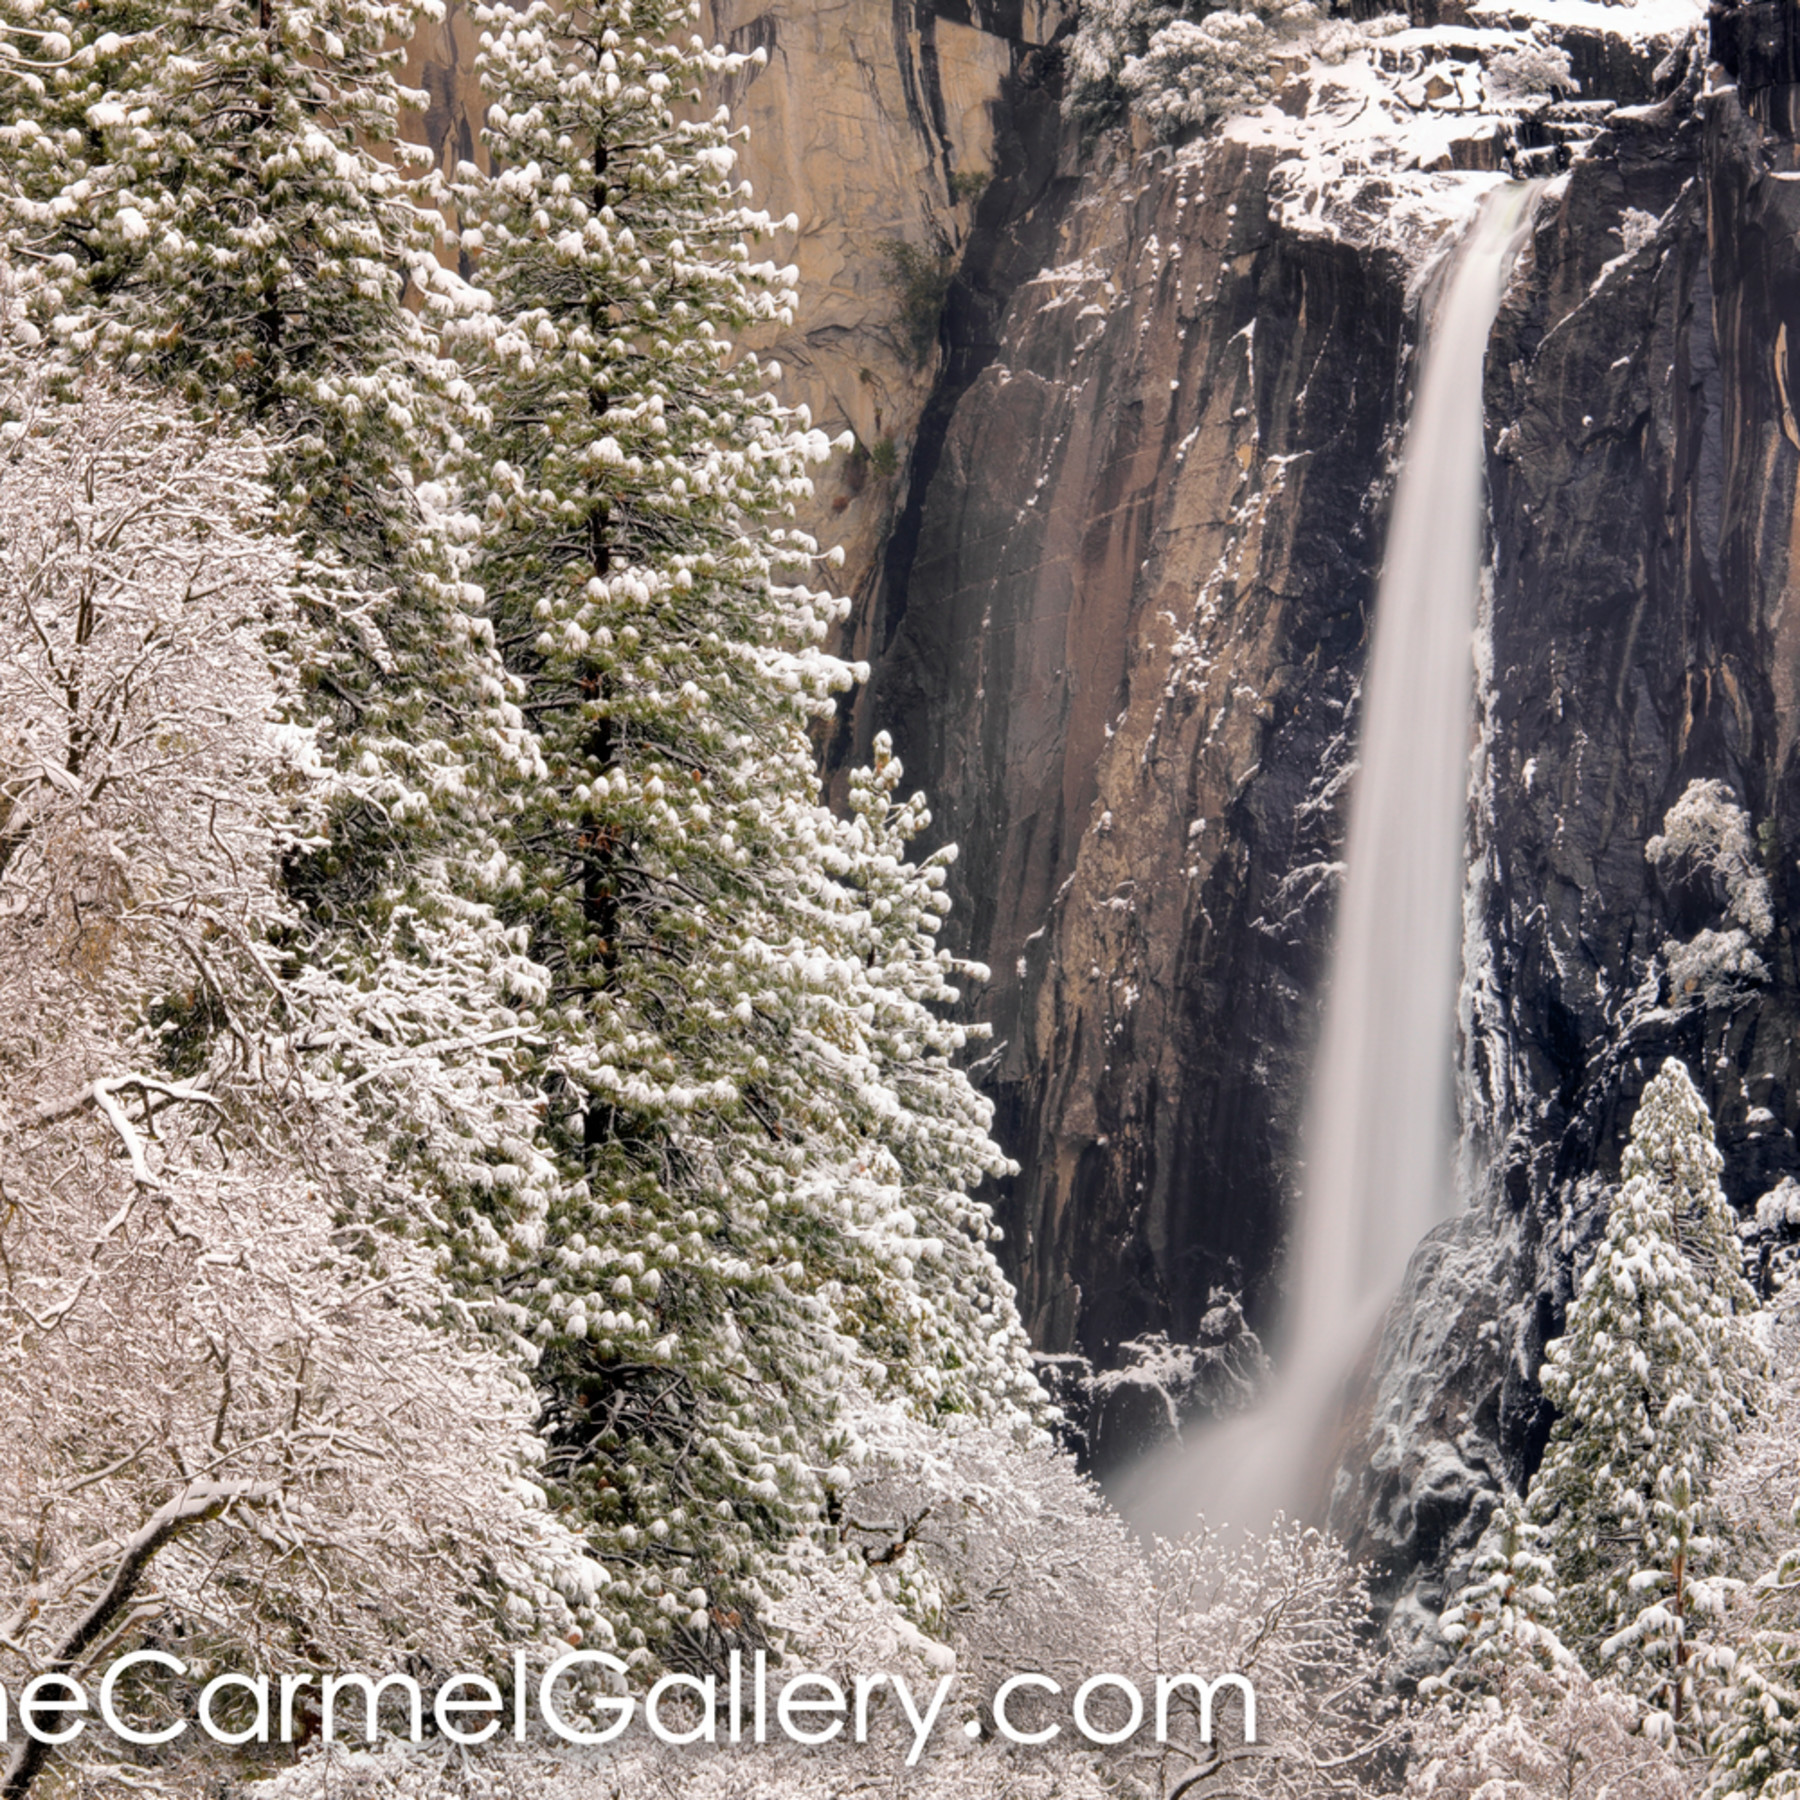 Winter wonder yosemite vpryiw